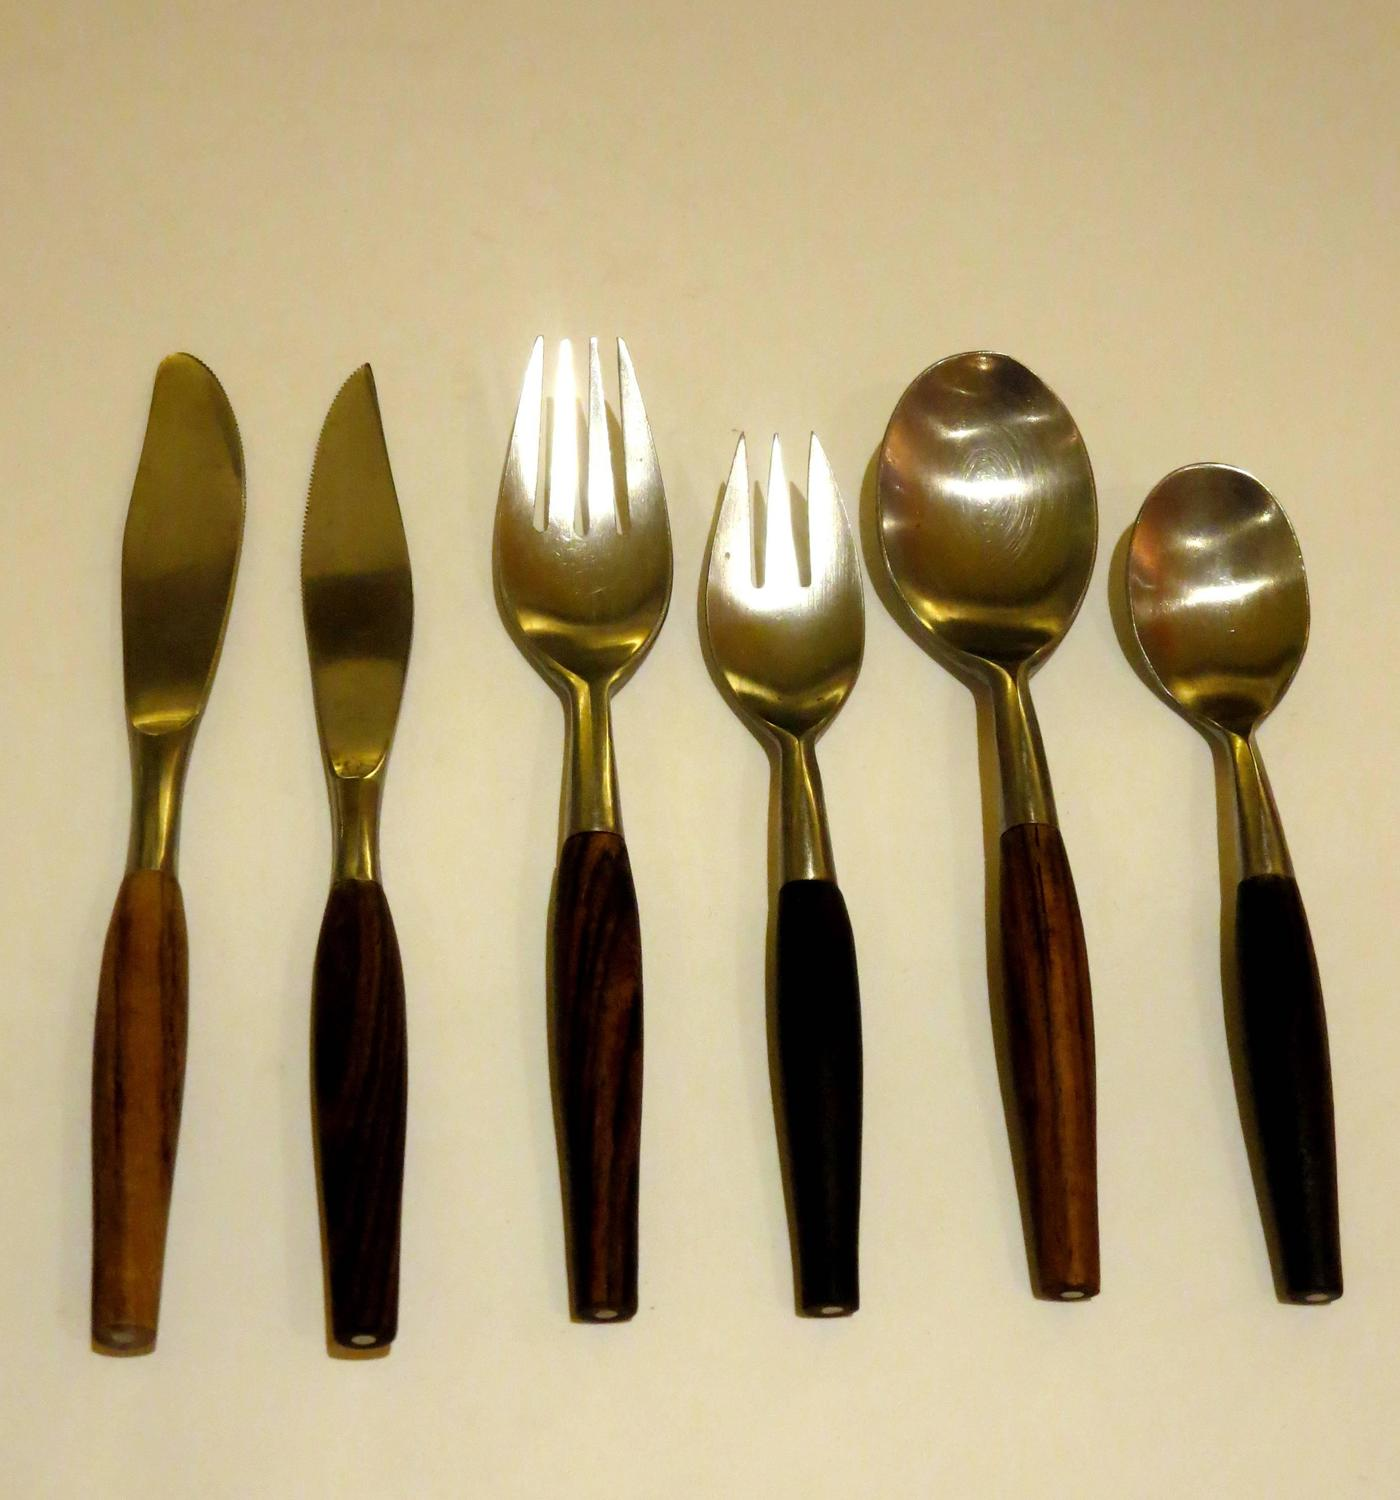 Contemporary Stainless Steel Flatware 1950s Danish Modern Stainless Steel And Rosewood Flatware